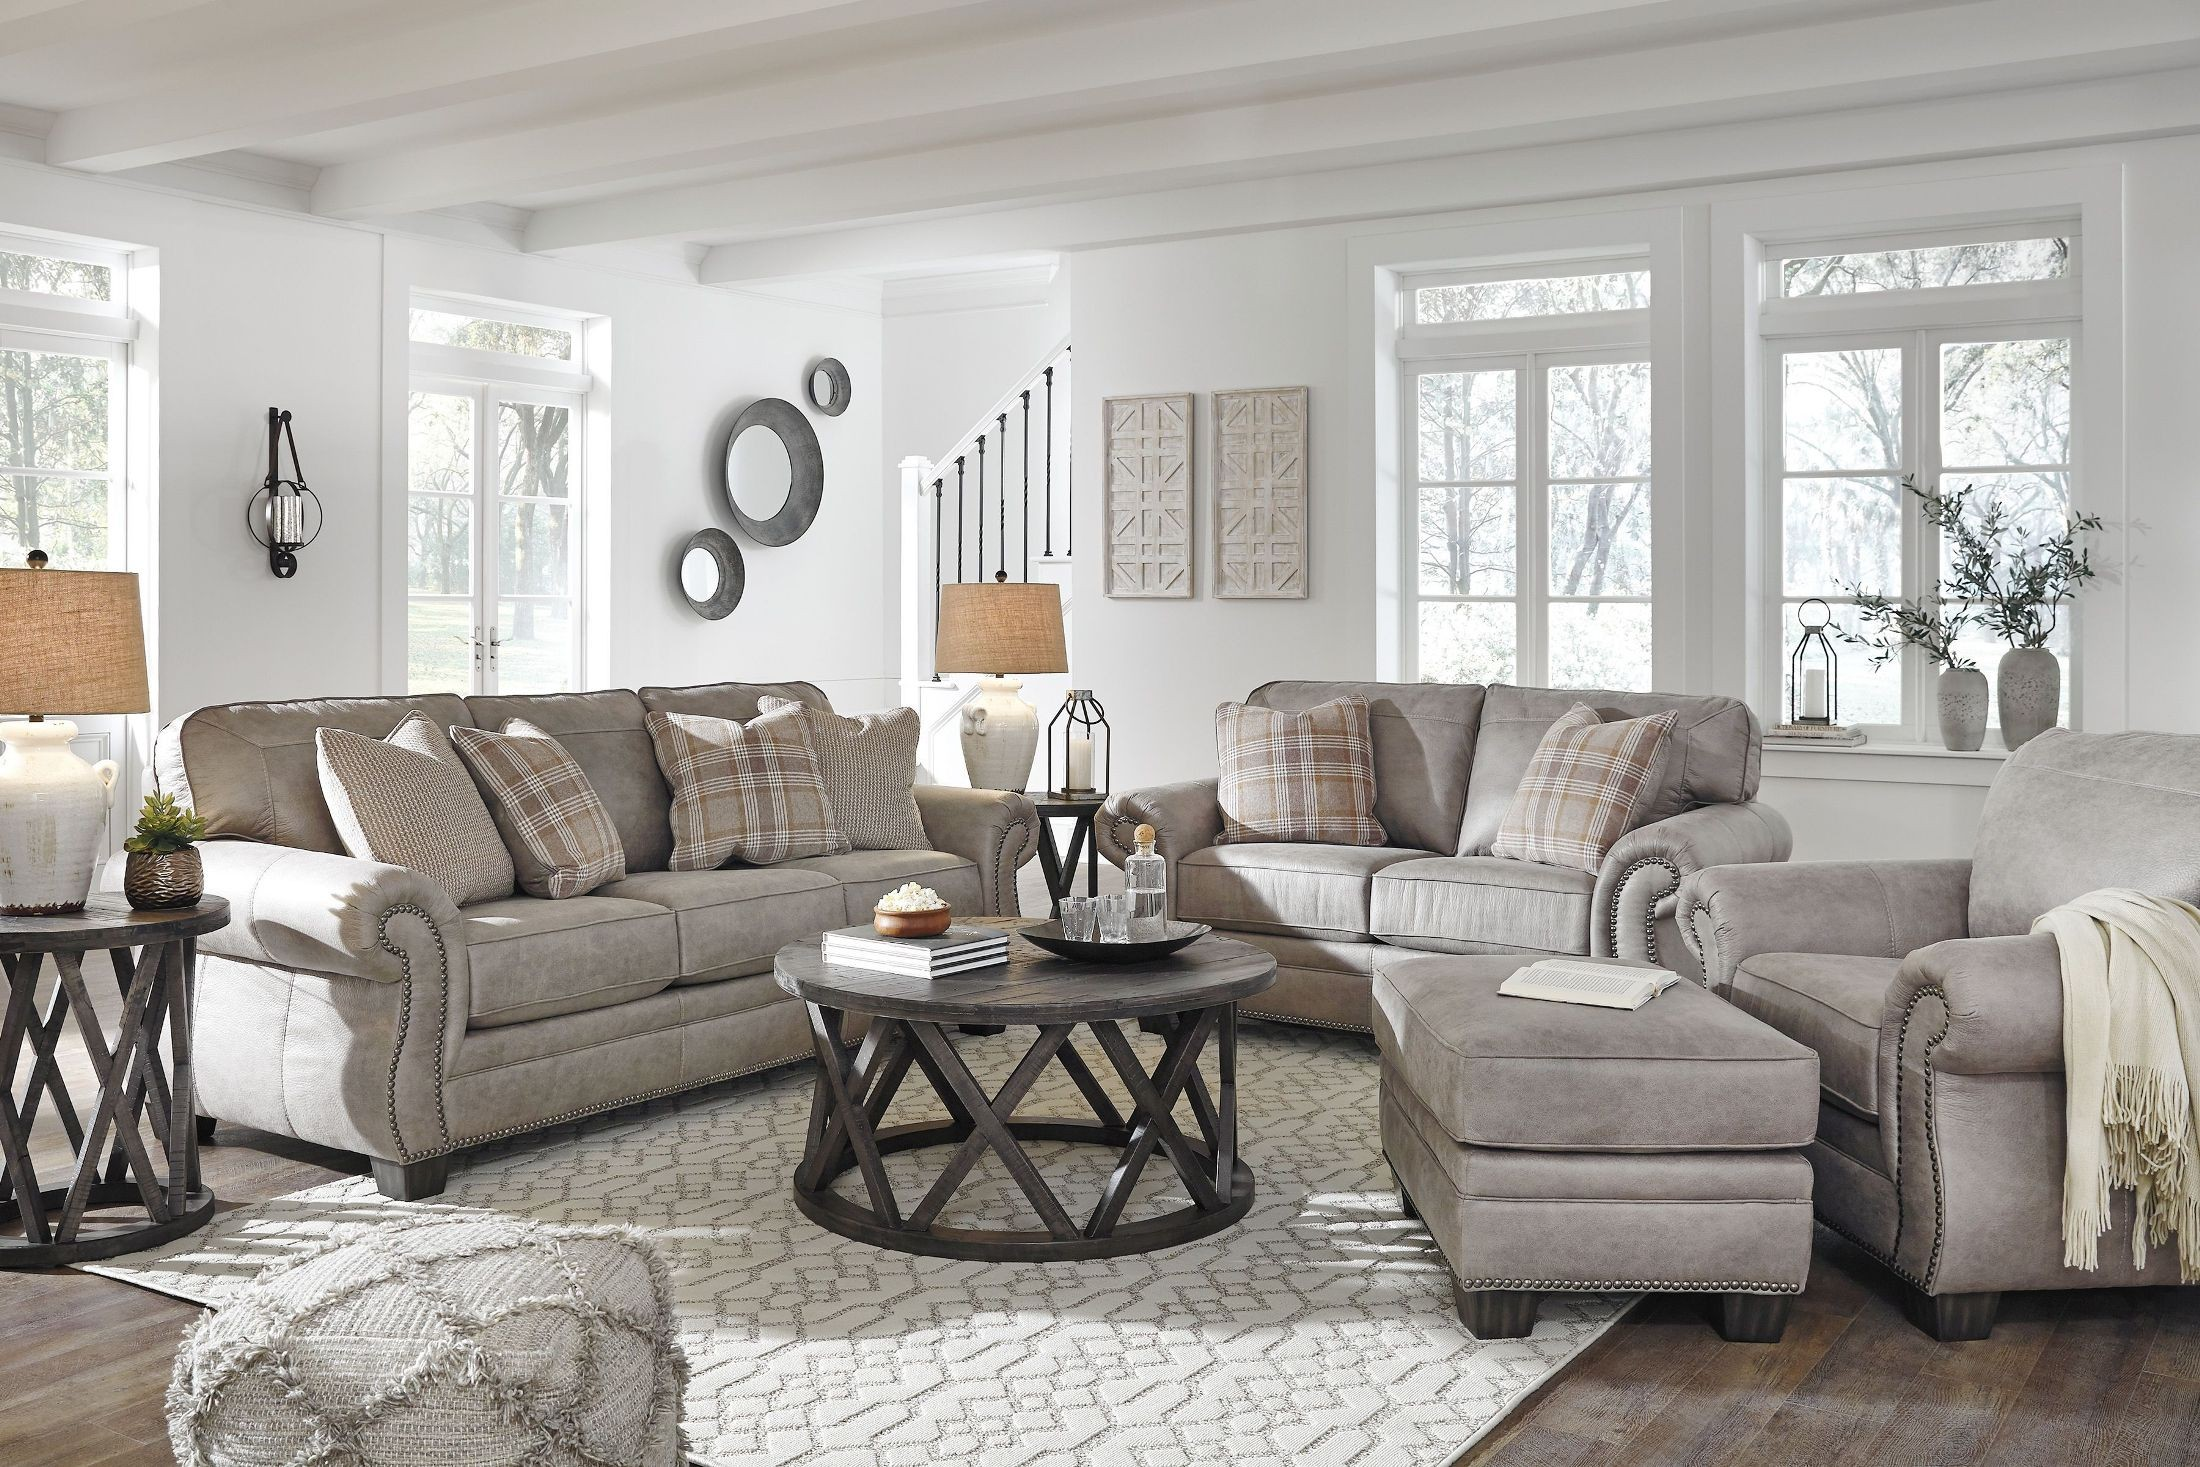 Olsberg steel living room set 2711565